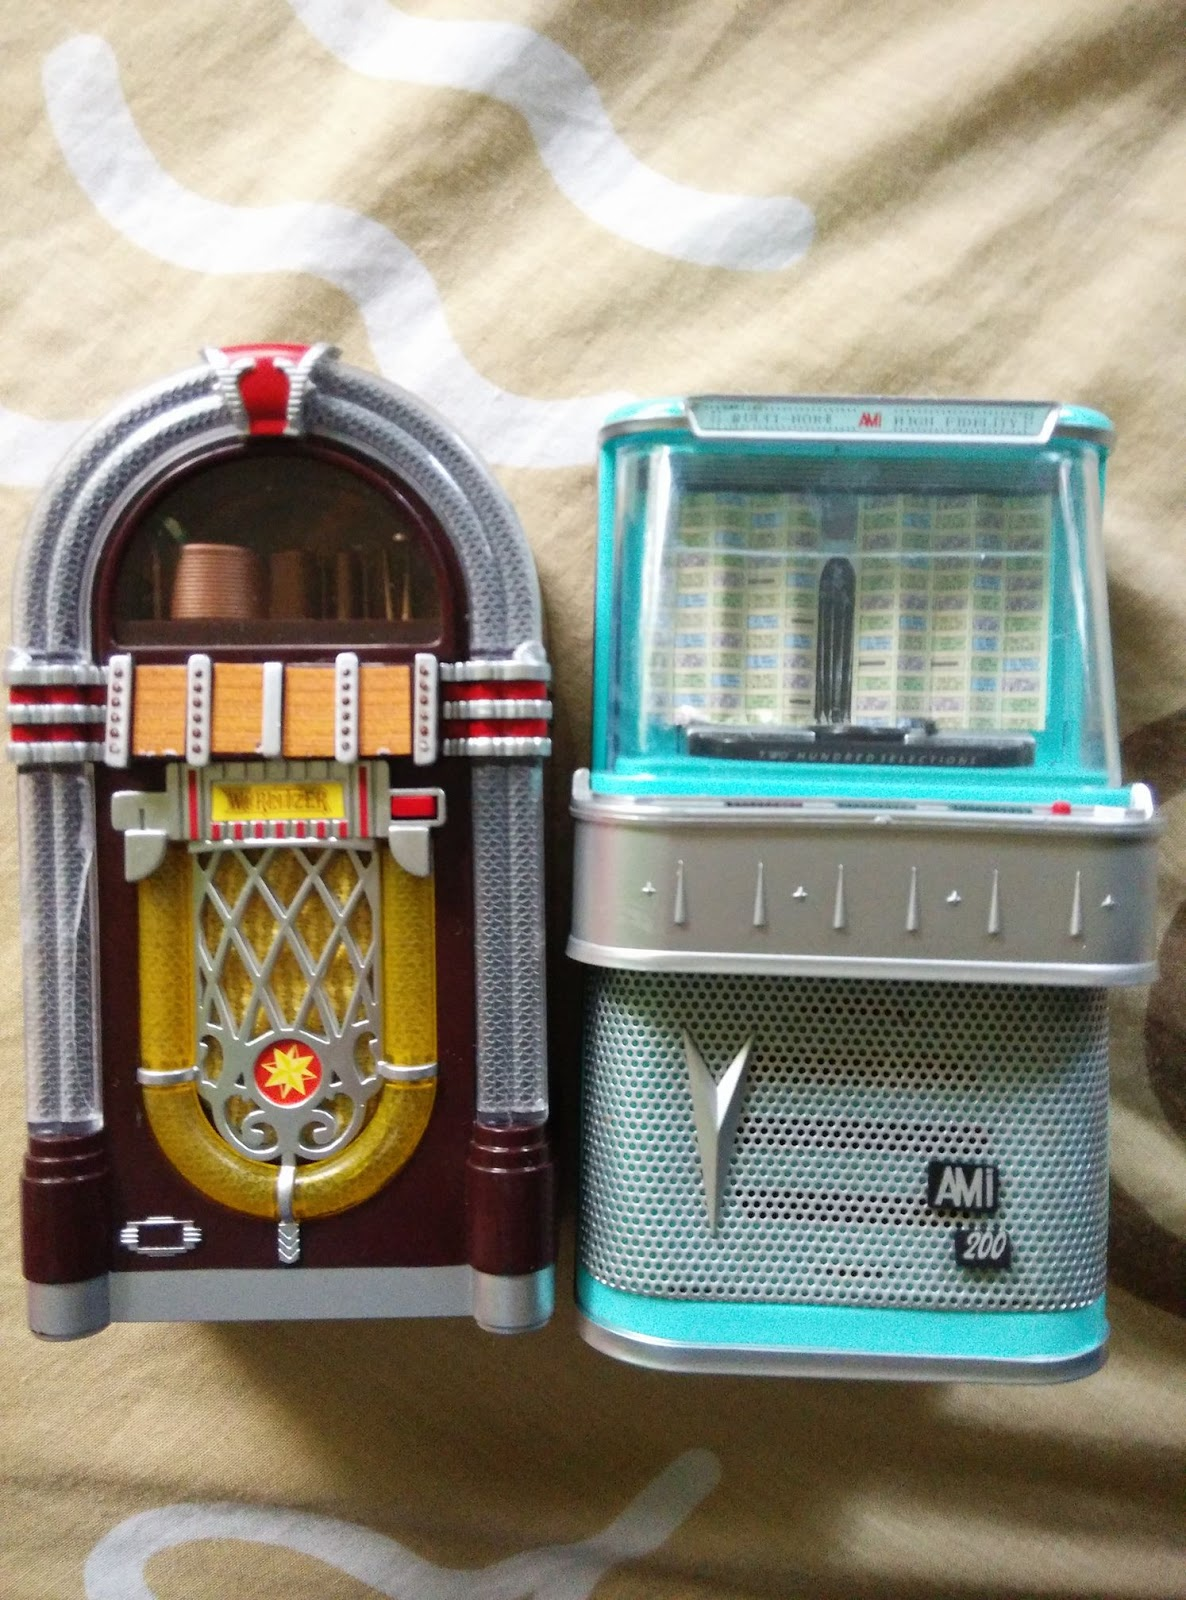 Jamie's Toy Blog: Miniature Jukeboxes